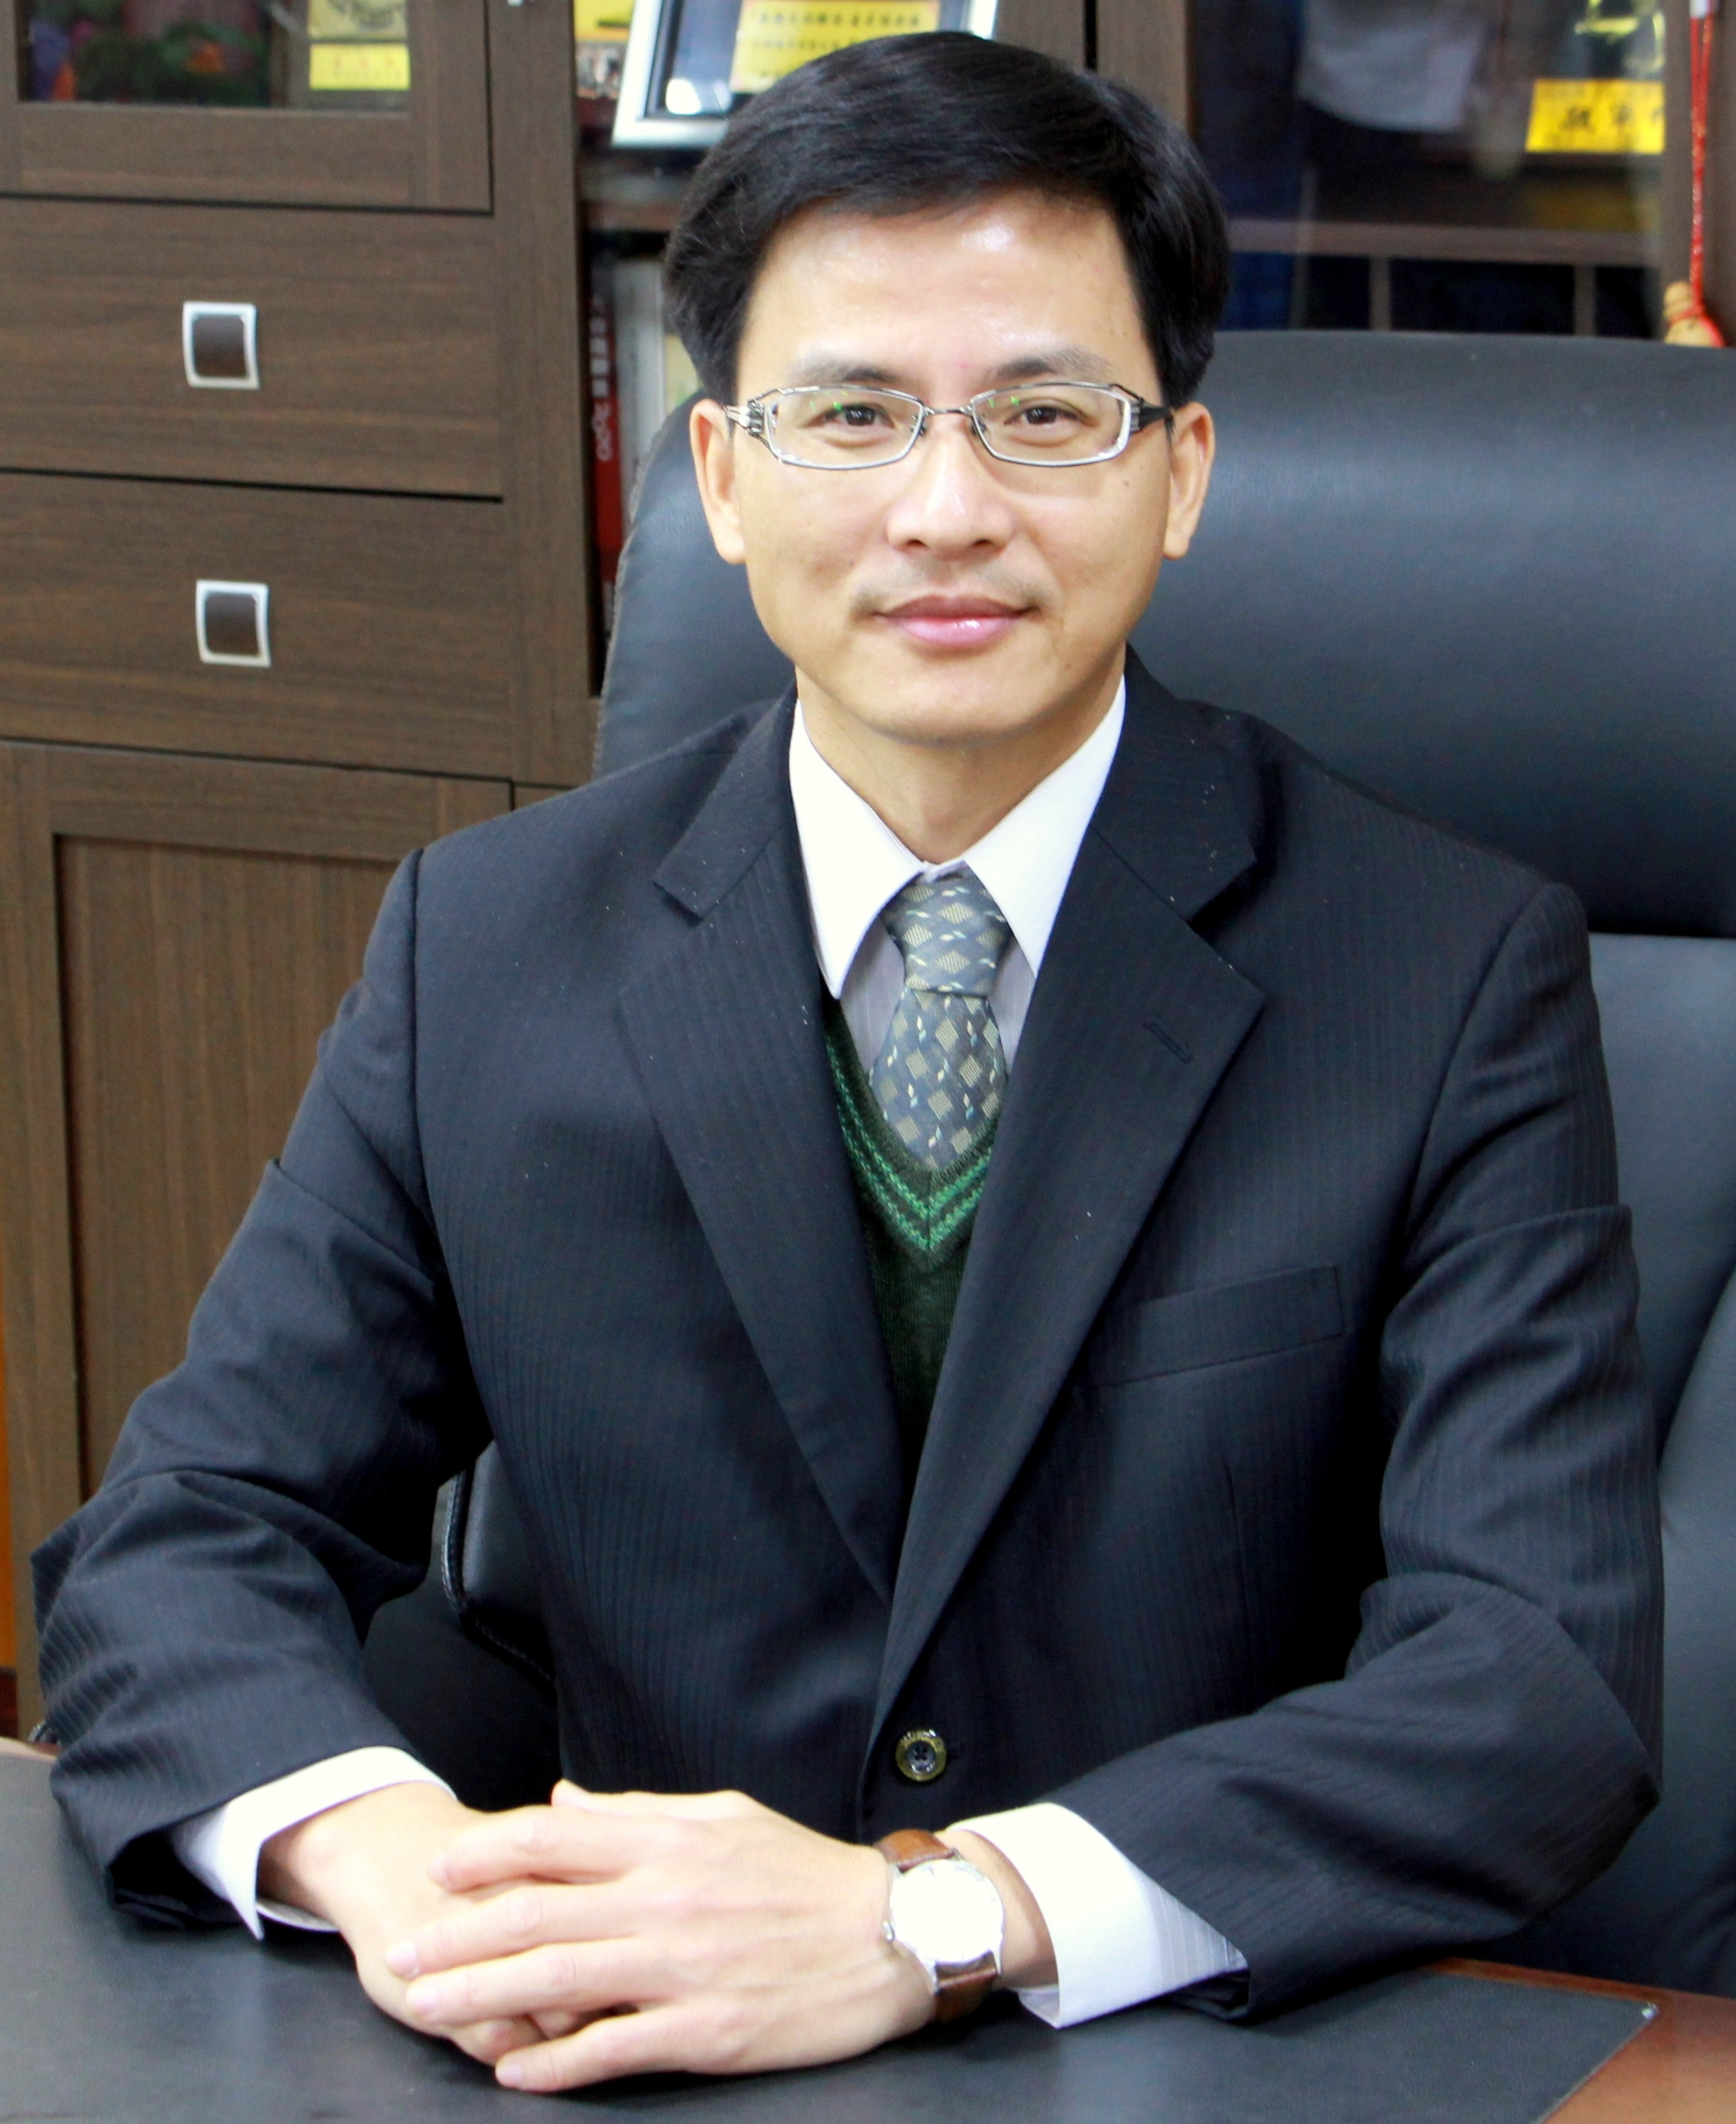 District Executive Neng-tung Yen